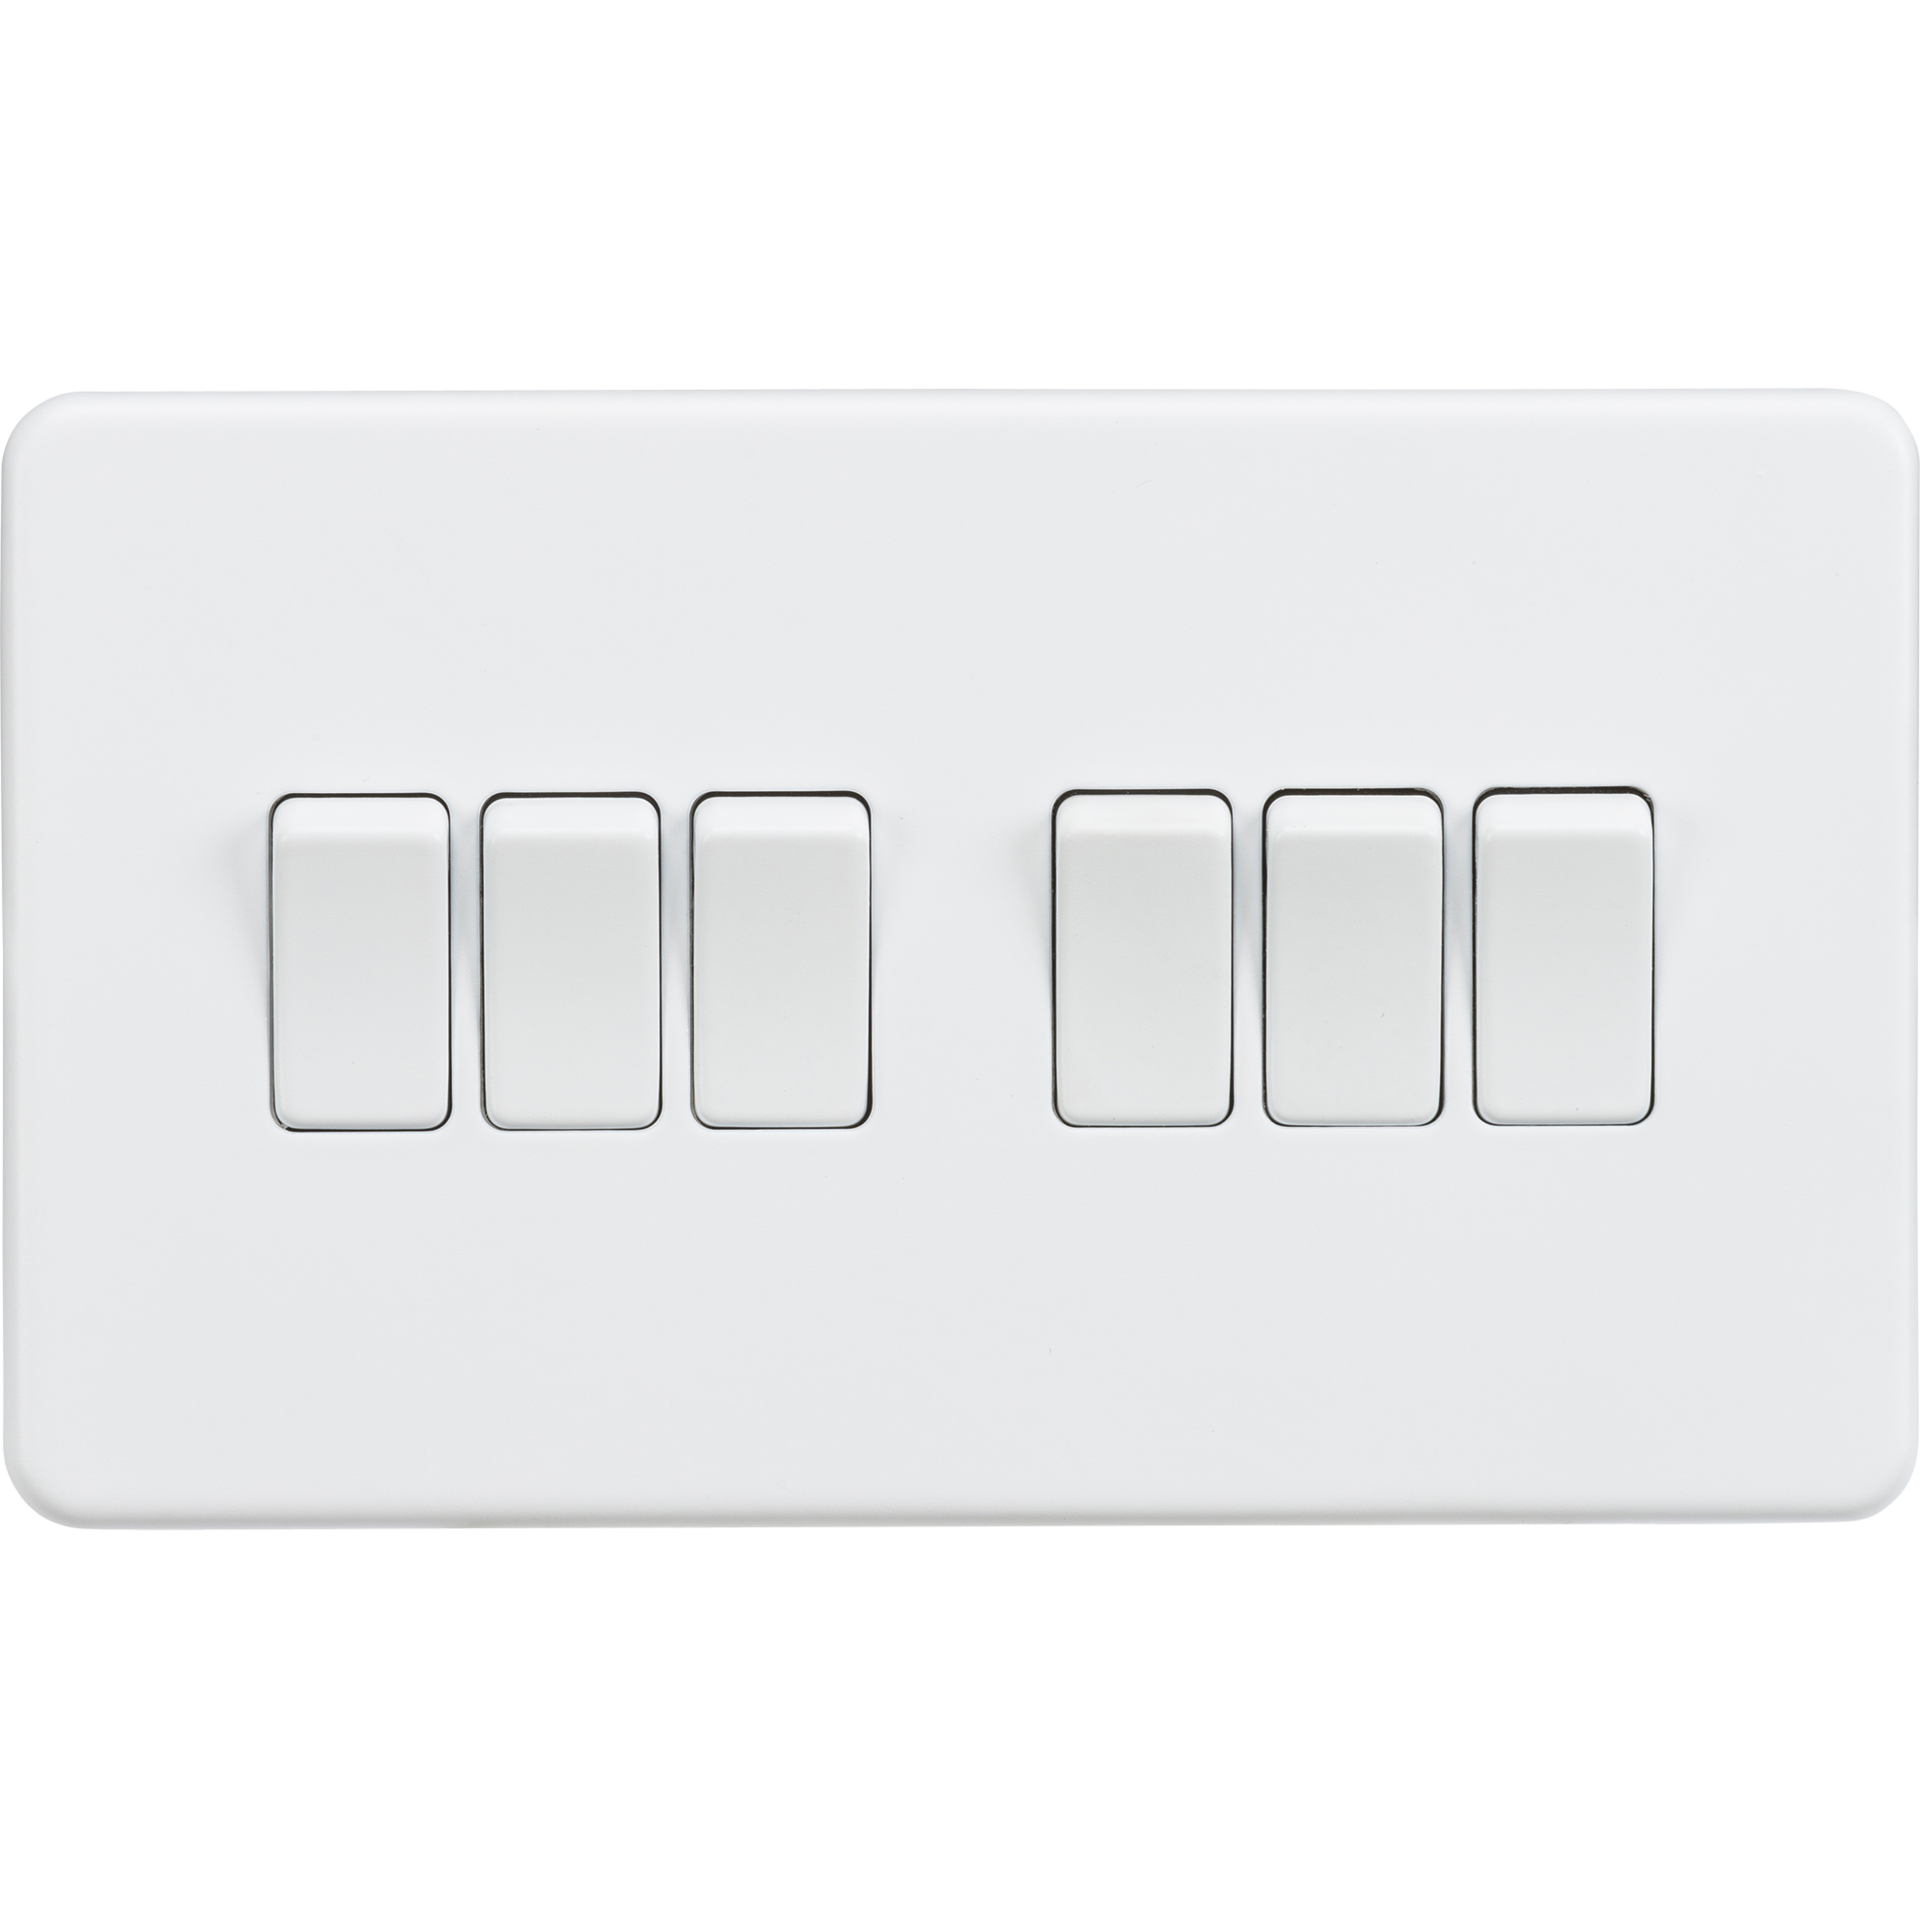 Screwless 10A 6G 2 way switch - Matt white